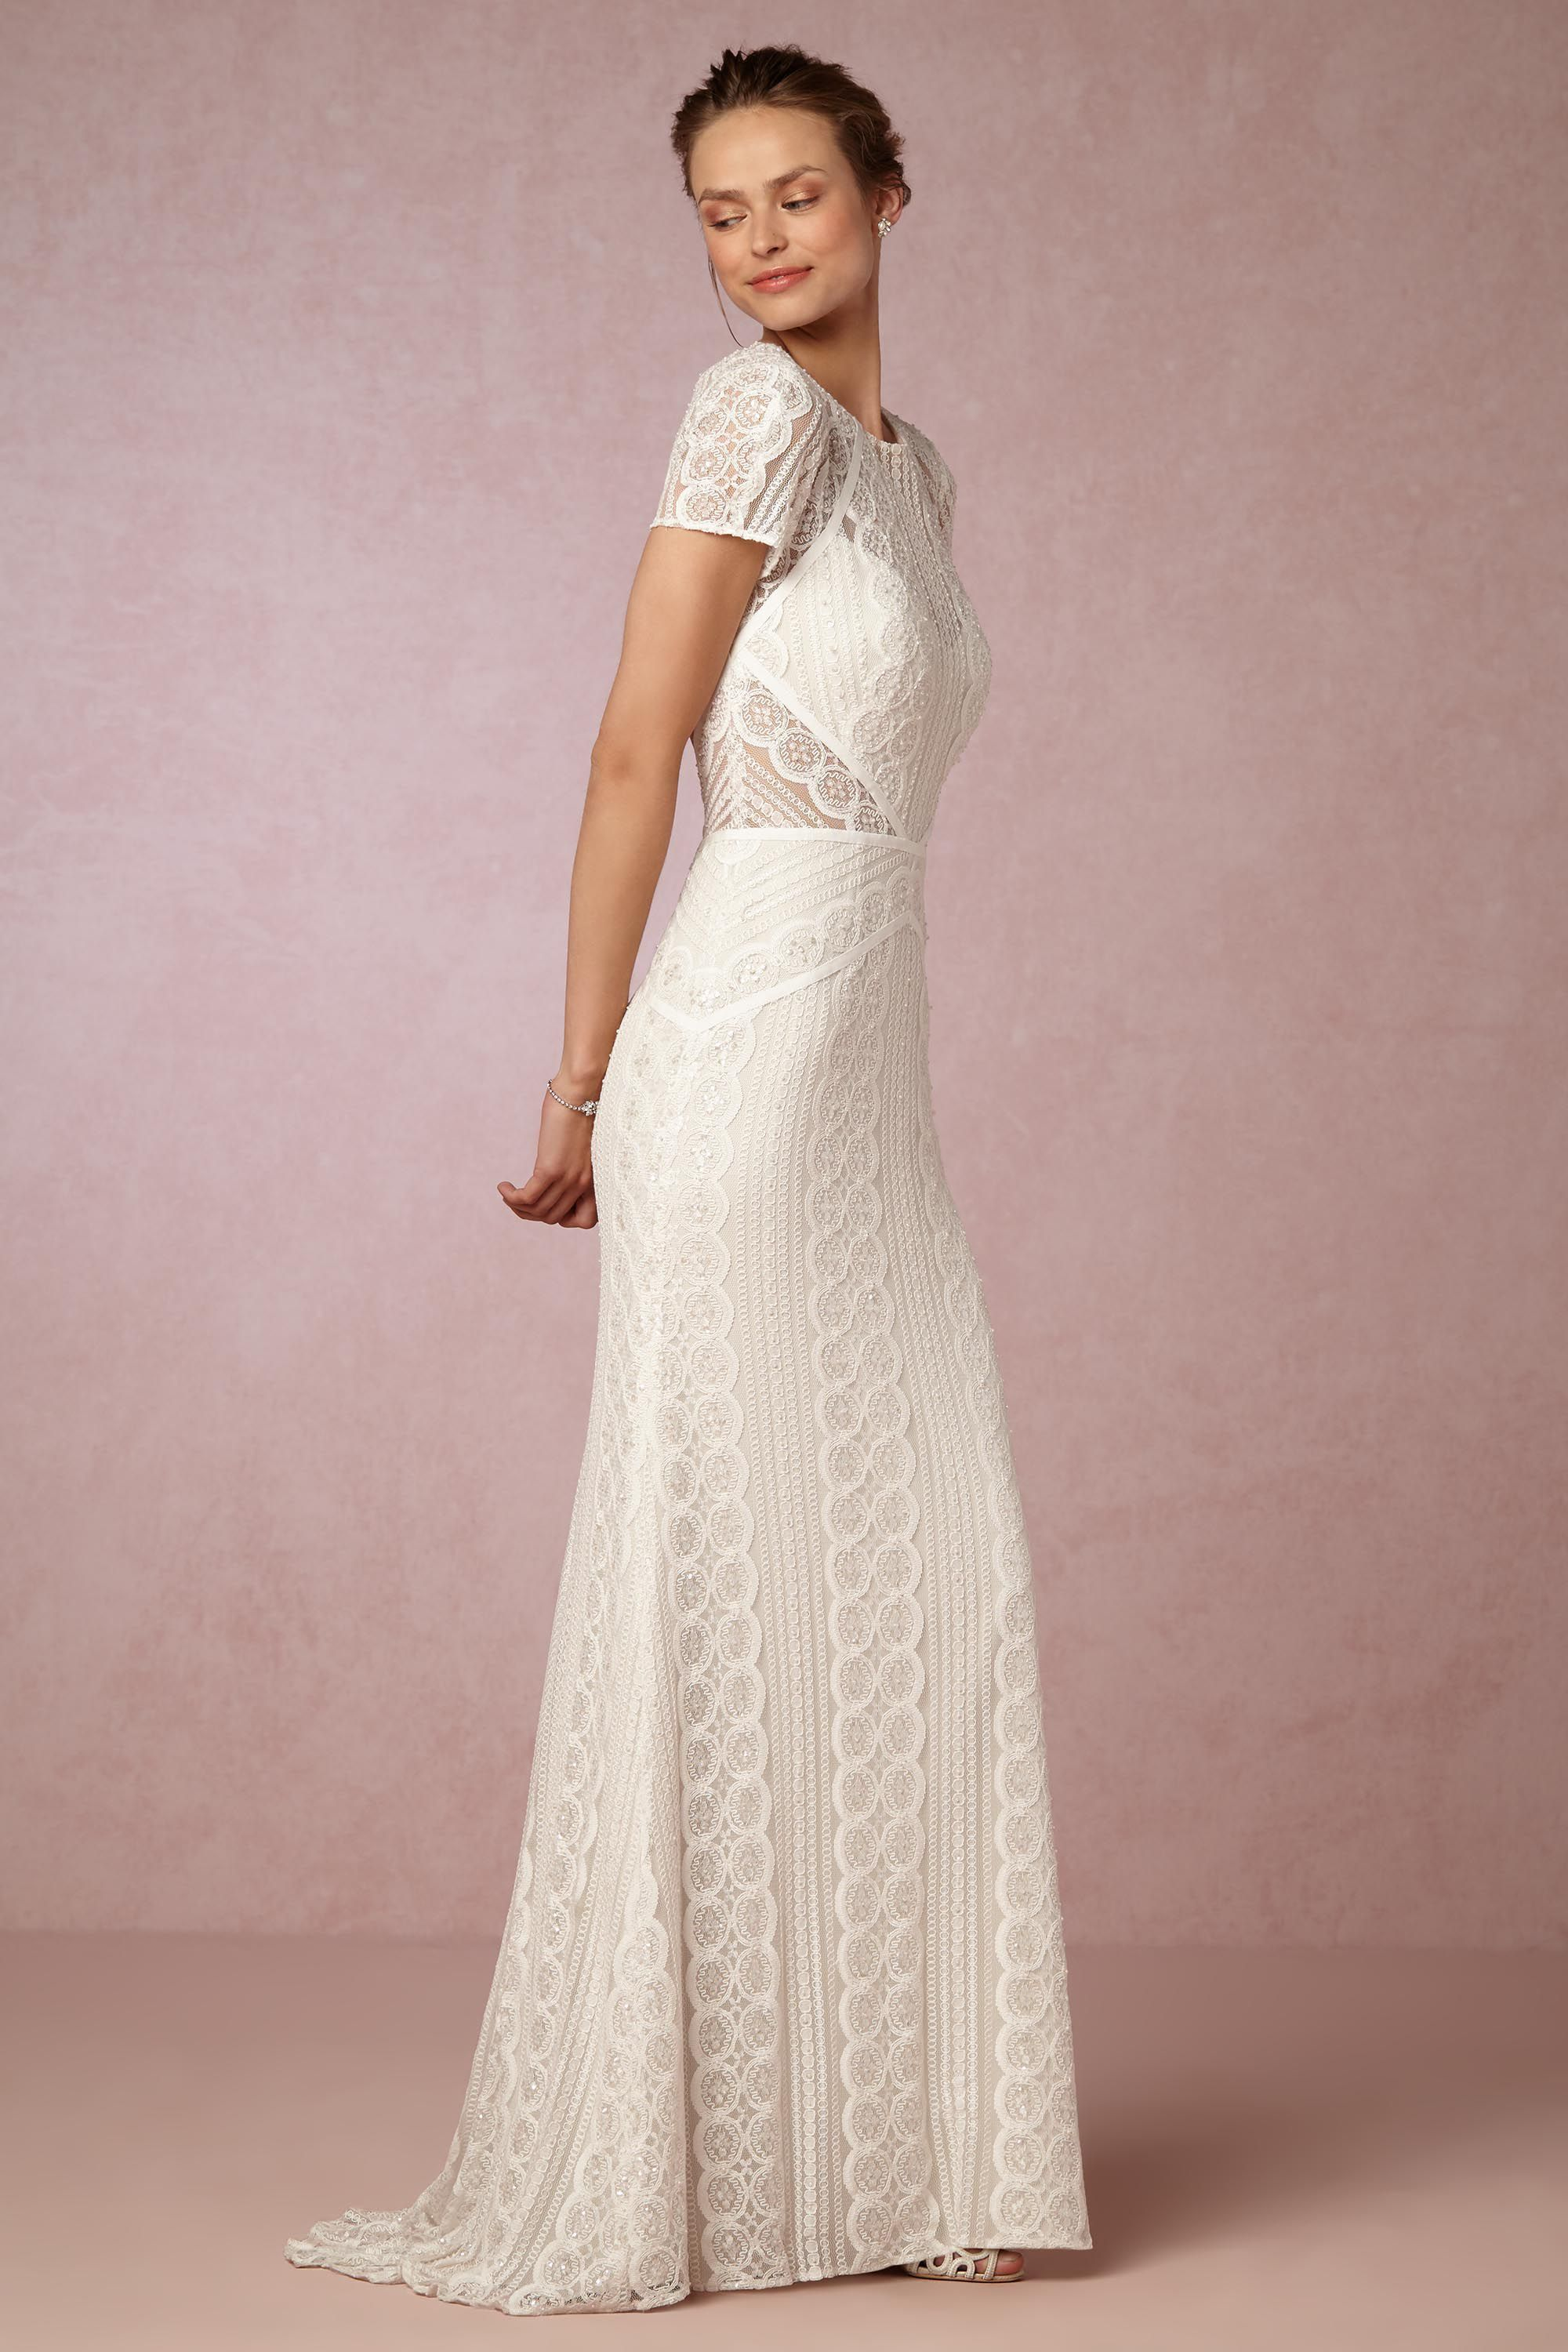 Simple white wedding dresses  BHLDNus Watters Monica Gown in Ivoryoyster  Wedding  Pinterest